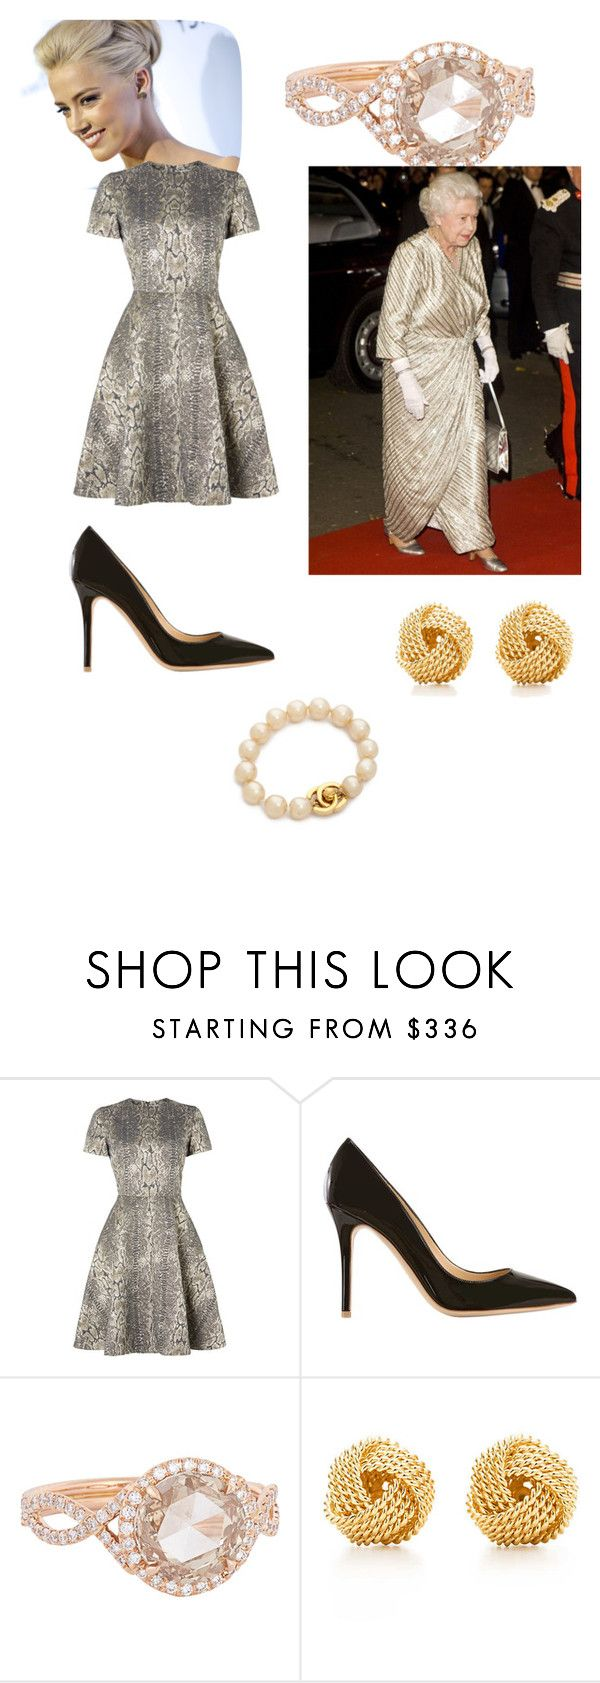 """""""Attending the Dramatic Arts Reception with the Queen"""" by emiliaduchessofcambridge ❤ liked on Polyvore featuring Alice by Temperley, Semilla, Monique Péan and Tiffany & Co."""